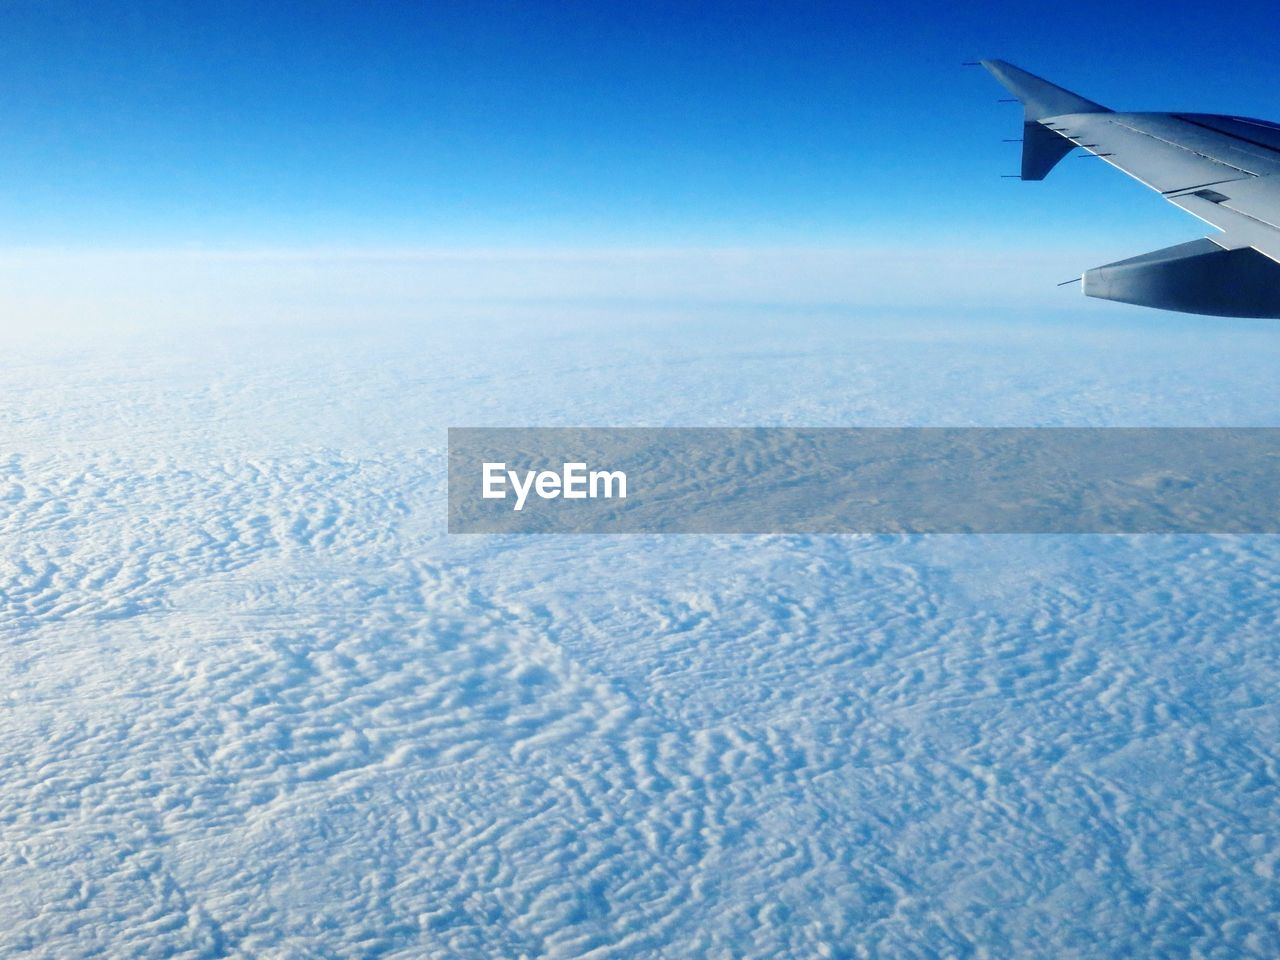 airplane, aerial view, flying, nature, landscape, airplane wing, journey, scenics, beauty in nature, transportation, air vehicle, aircraft wing, tranquil scene, sky, no people, outdoors, travel, tranquility, day, blue, winter, snow, cold temperature, clear sky